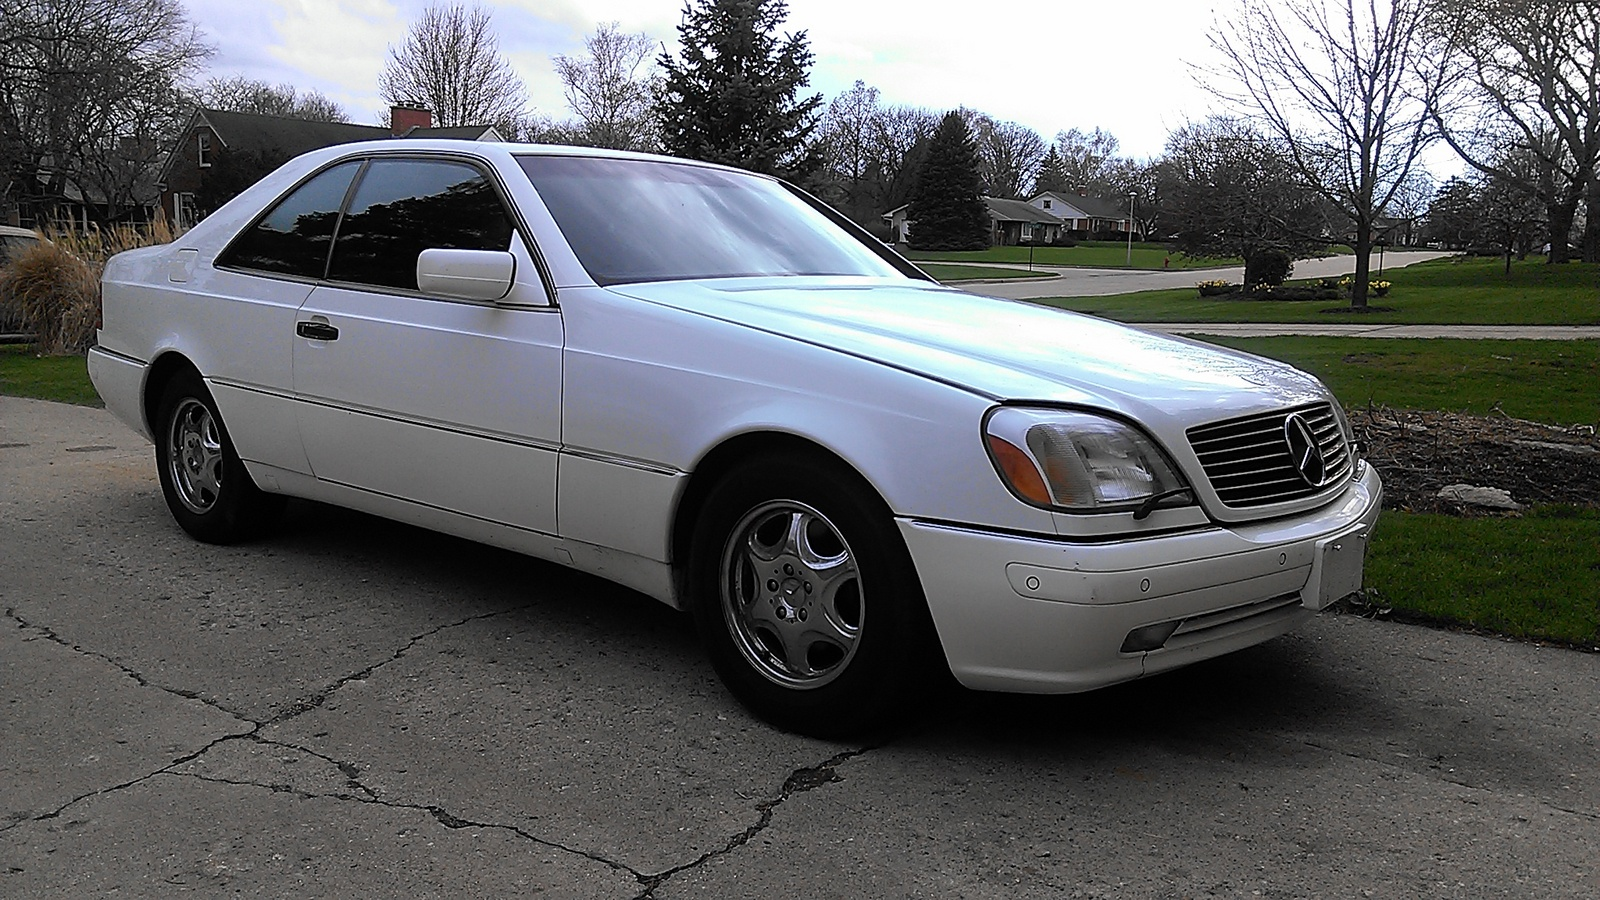 1997 mercedes benz s class pictures cargurus for 1997 mercedes benz s600